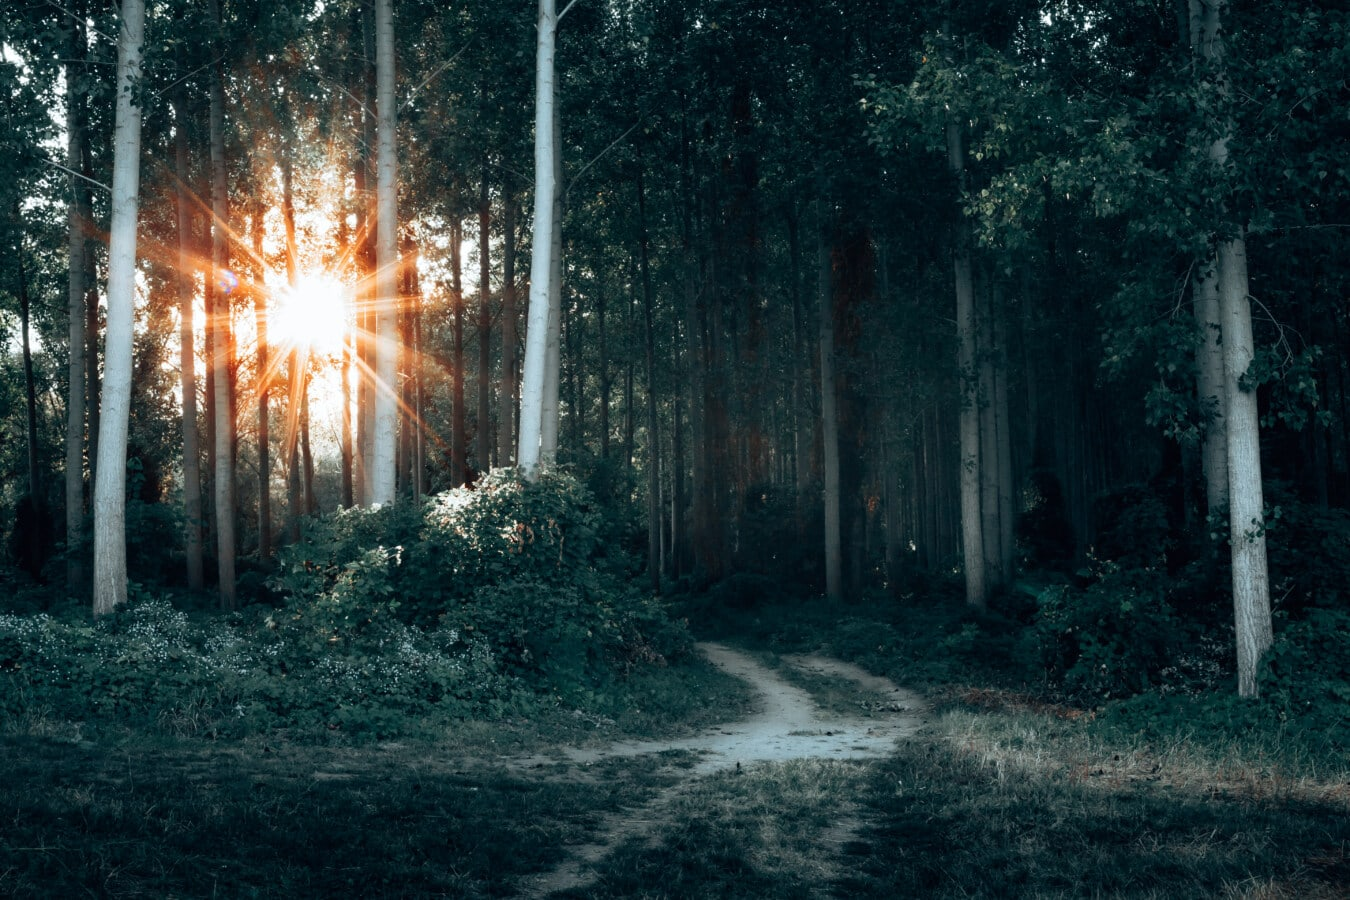 sunset, sun, sunrays, mystery, forest road, forest, landscape, park, tree, trees